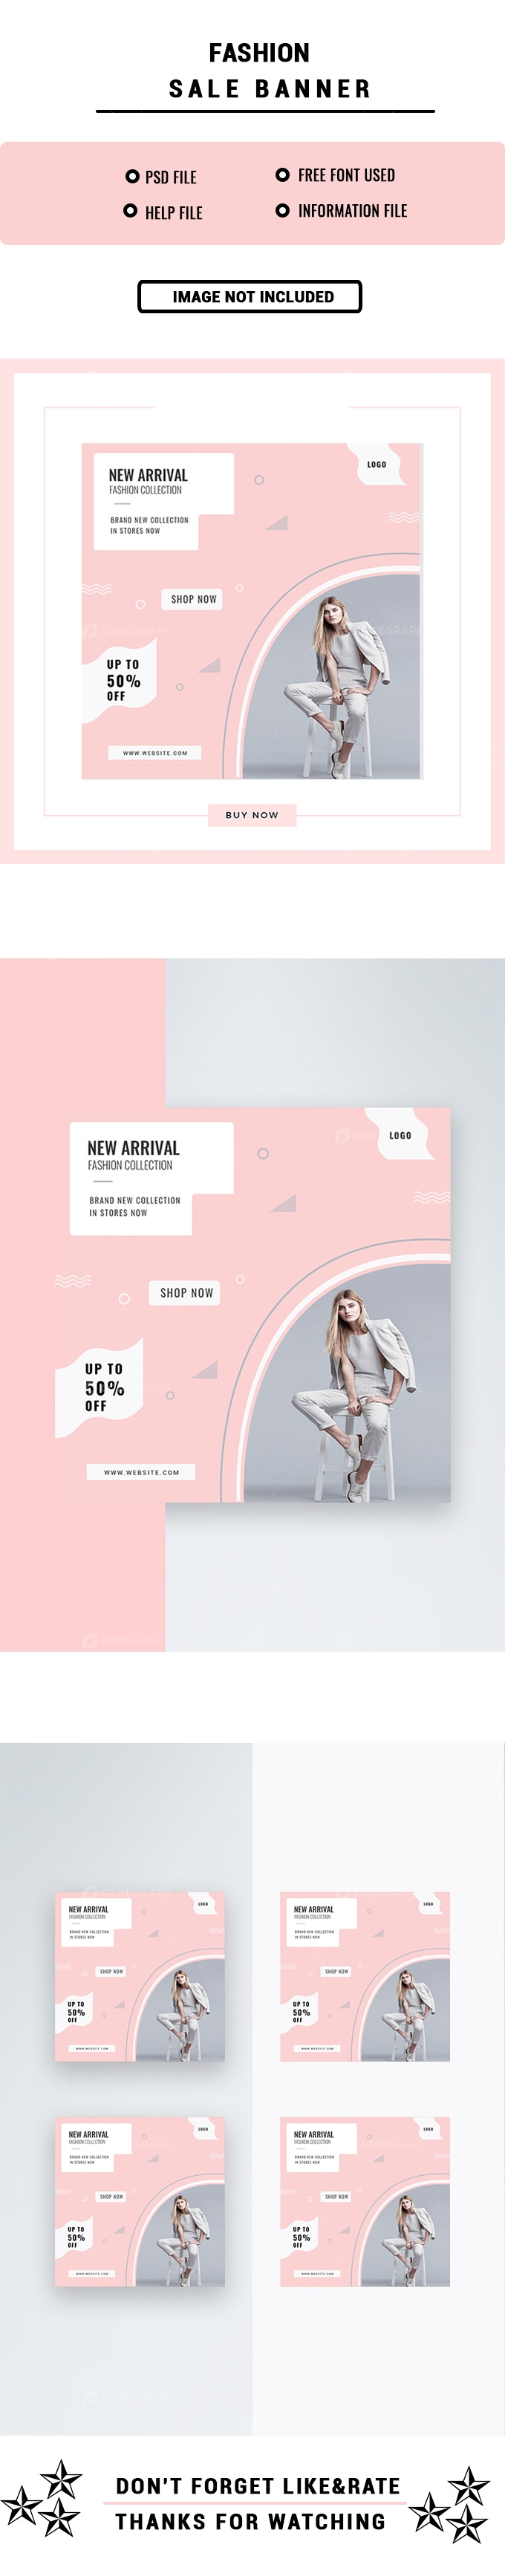 New Arrival Fashion Sale Banner